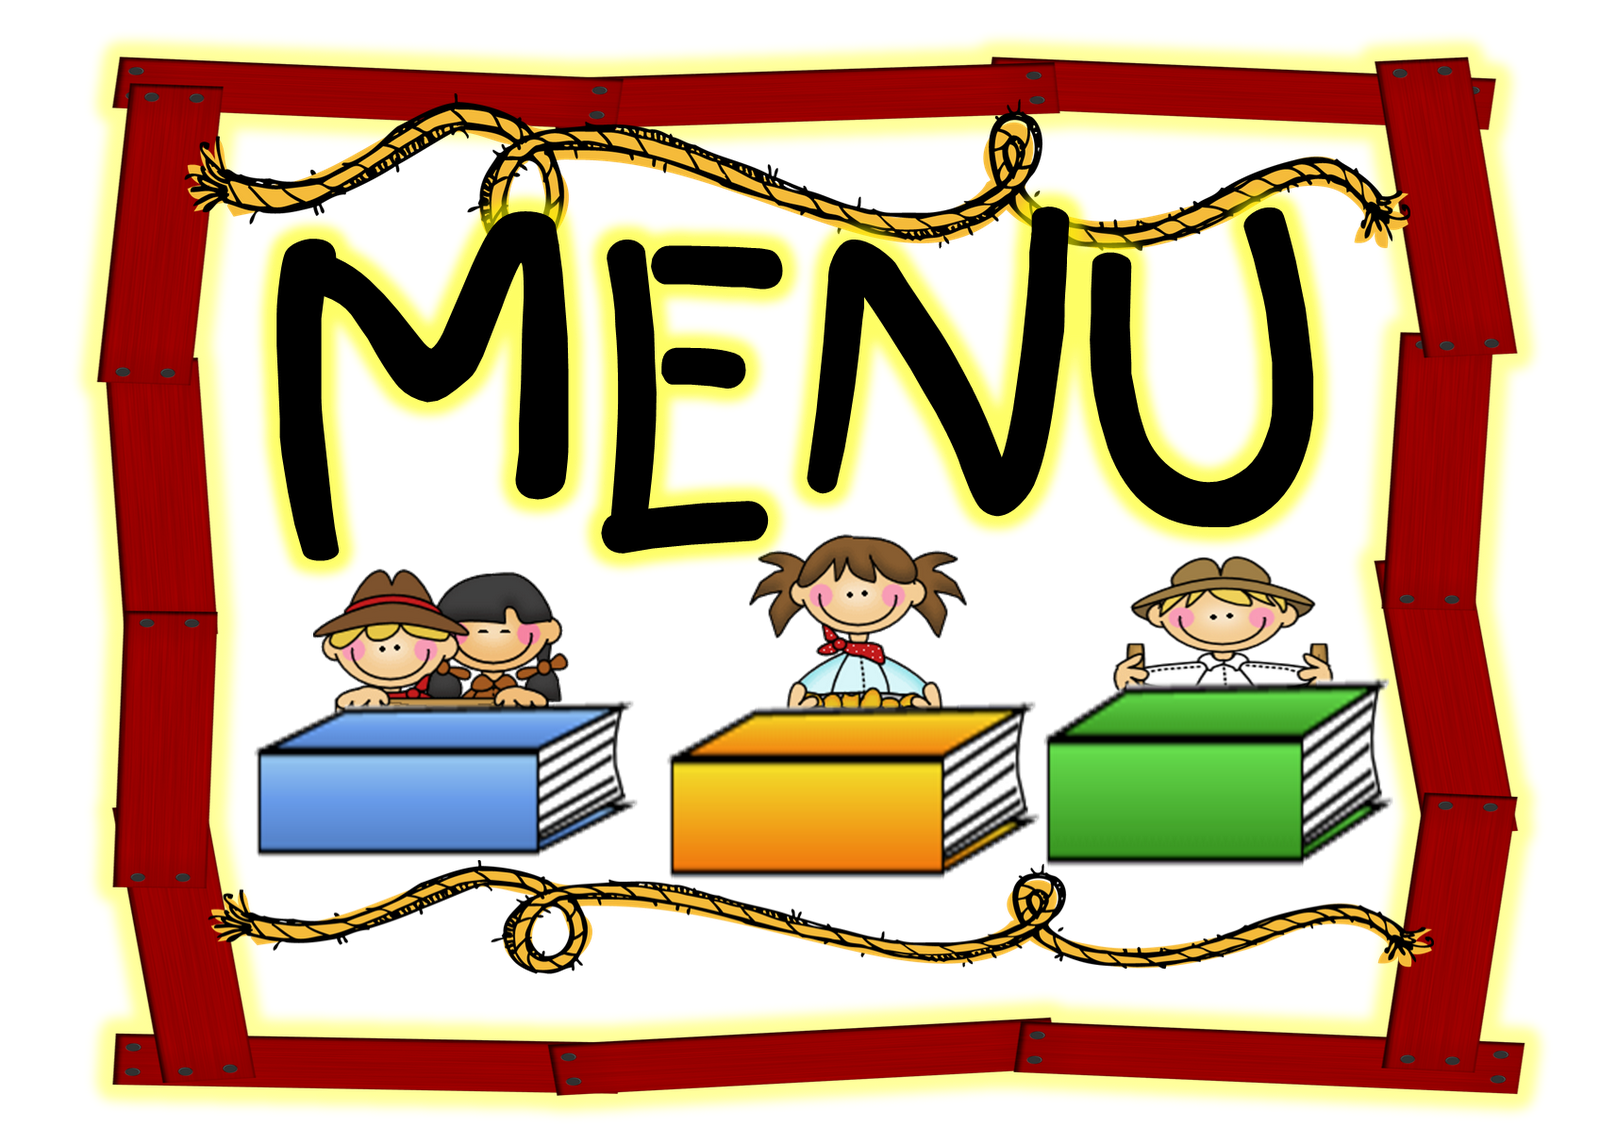 School Lunch Menu Clipart.